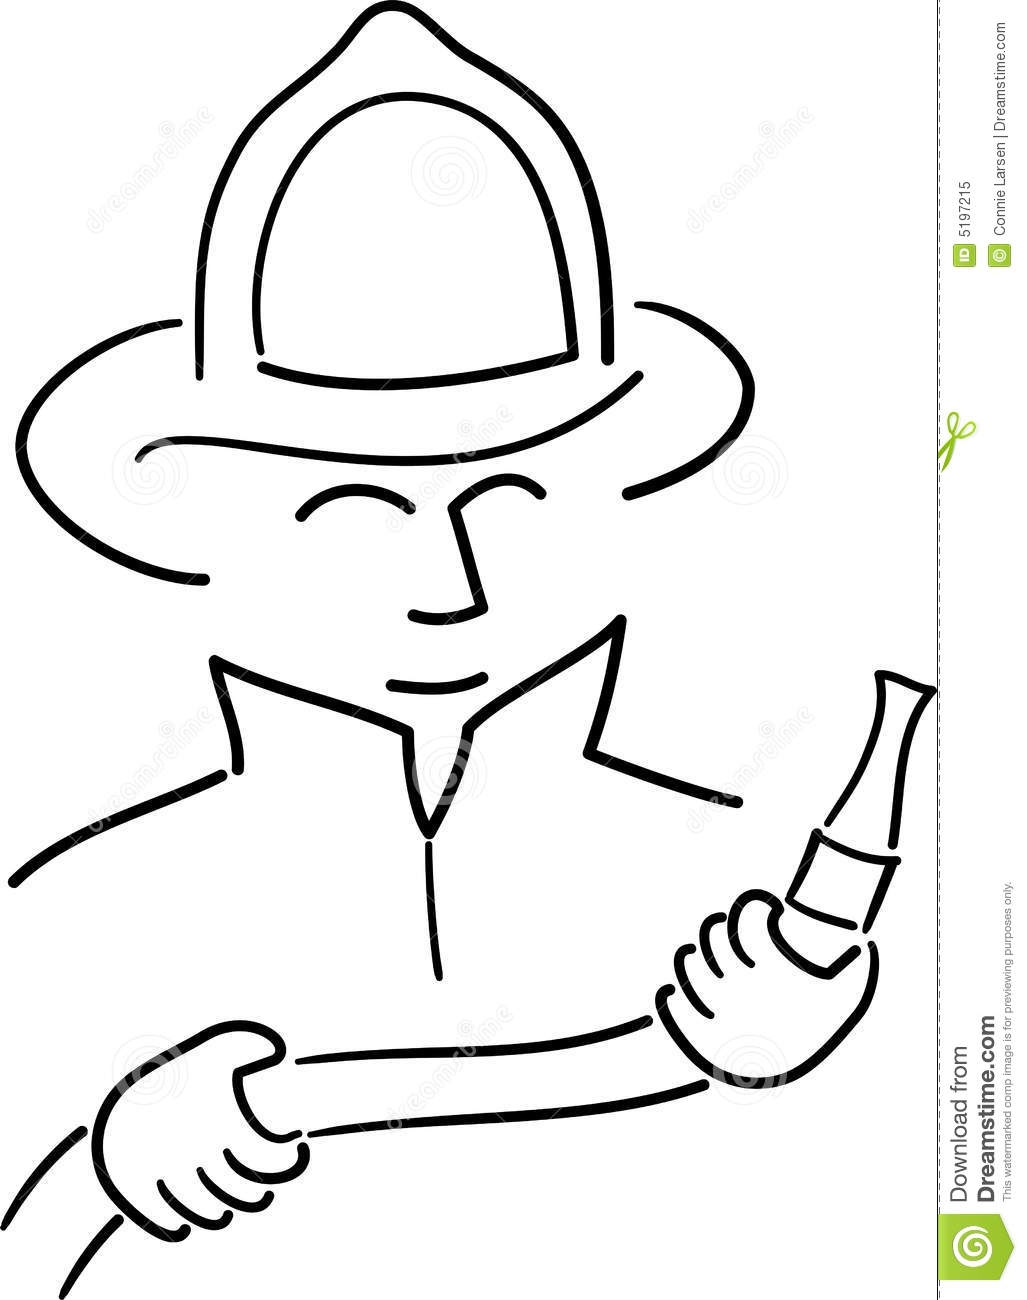 fire safety coloring pages - royalty free stock photo cartoon fireman ai image